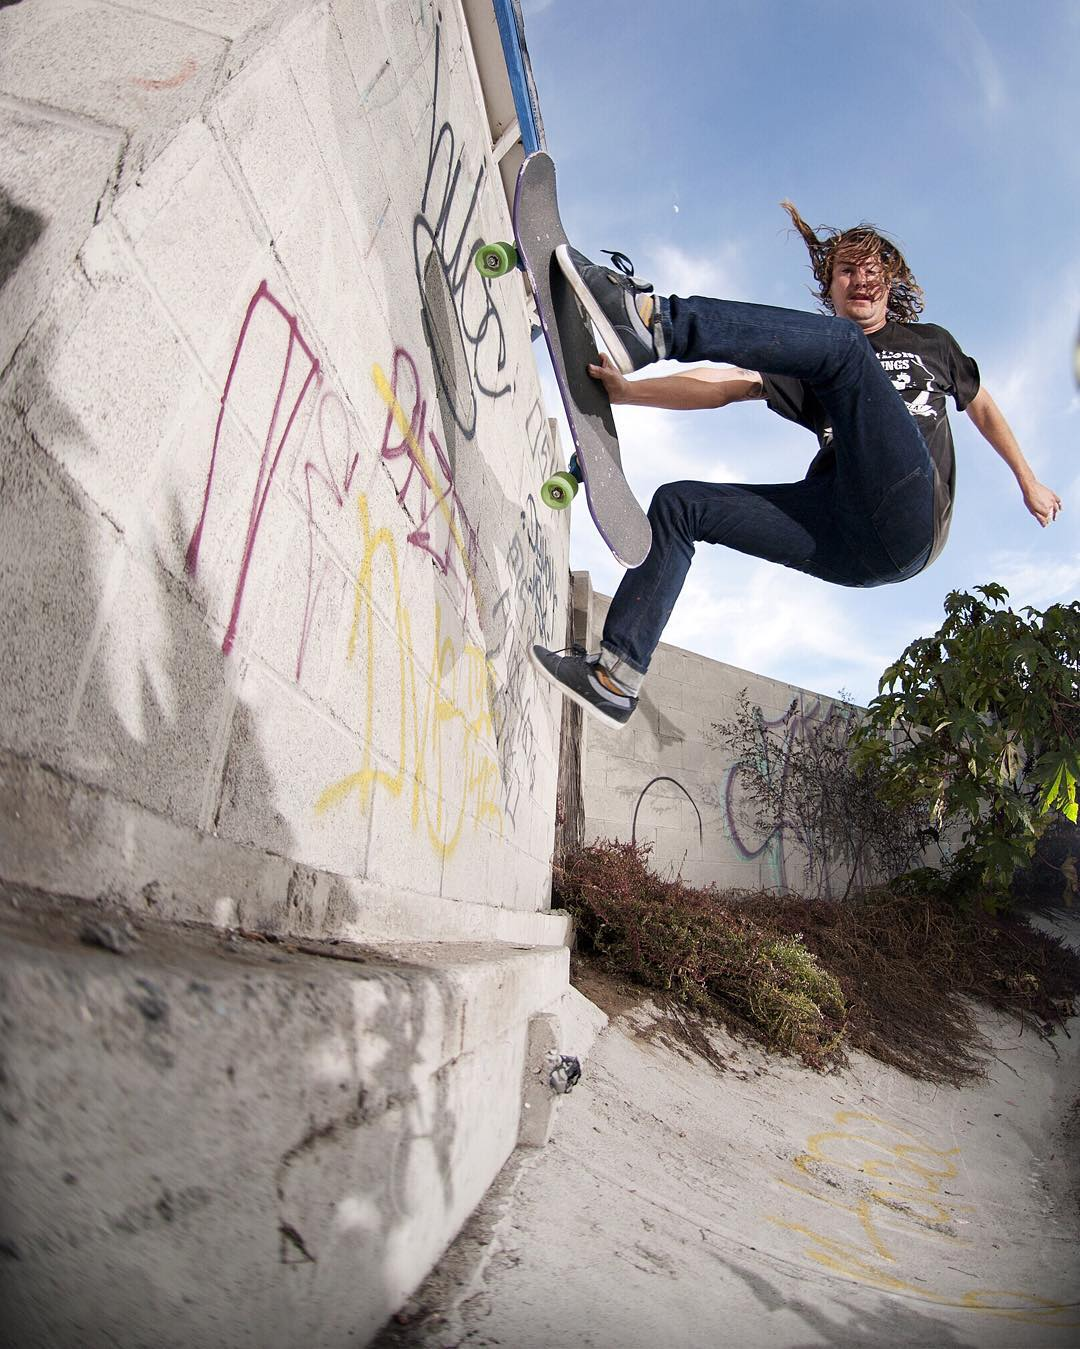 @waylonhendricks wall ride fast plant. Sense it's 4/20 go to the site buy a board and use the promo code 420 to get a 30.00 board! Have fun out there! Photo by @charlienunez_ ✌